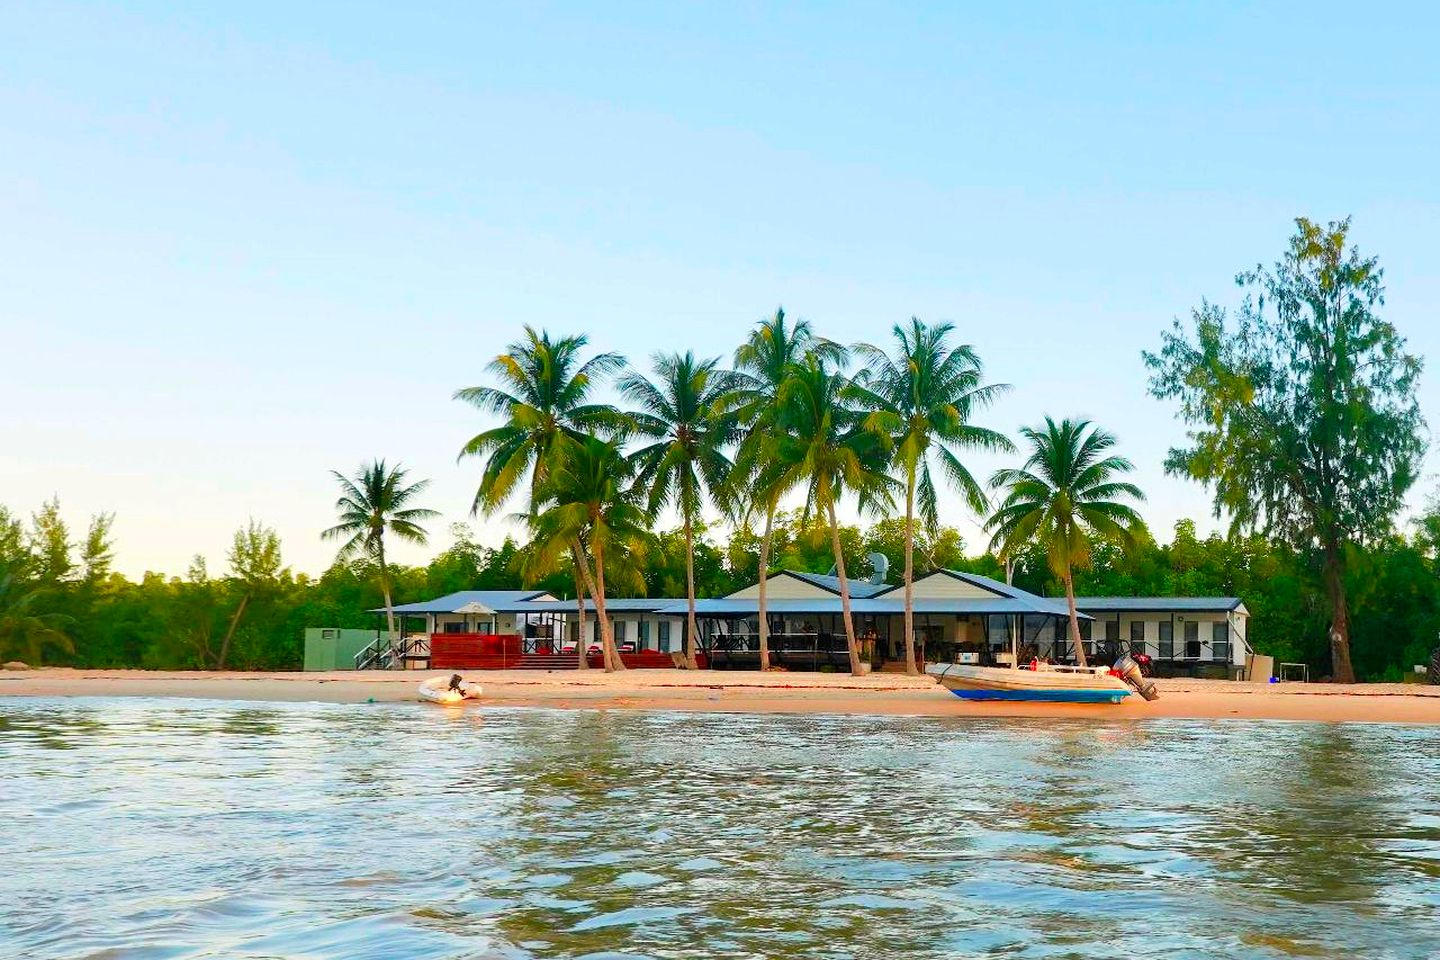 This Northern Territory holiday package includes a stay at this simply stunning Tiwi Islands accommodation